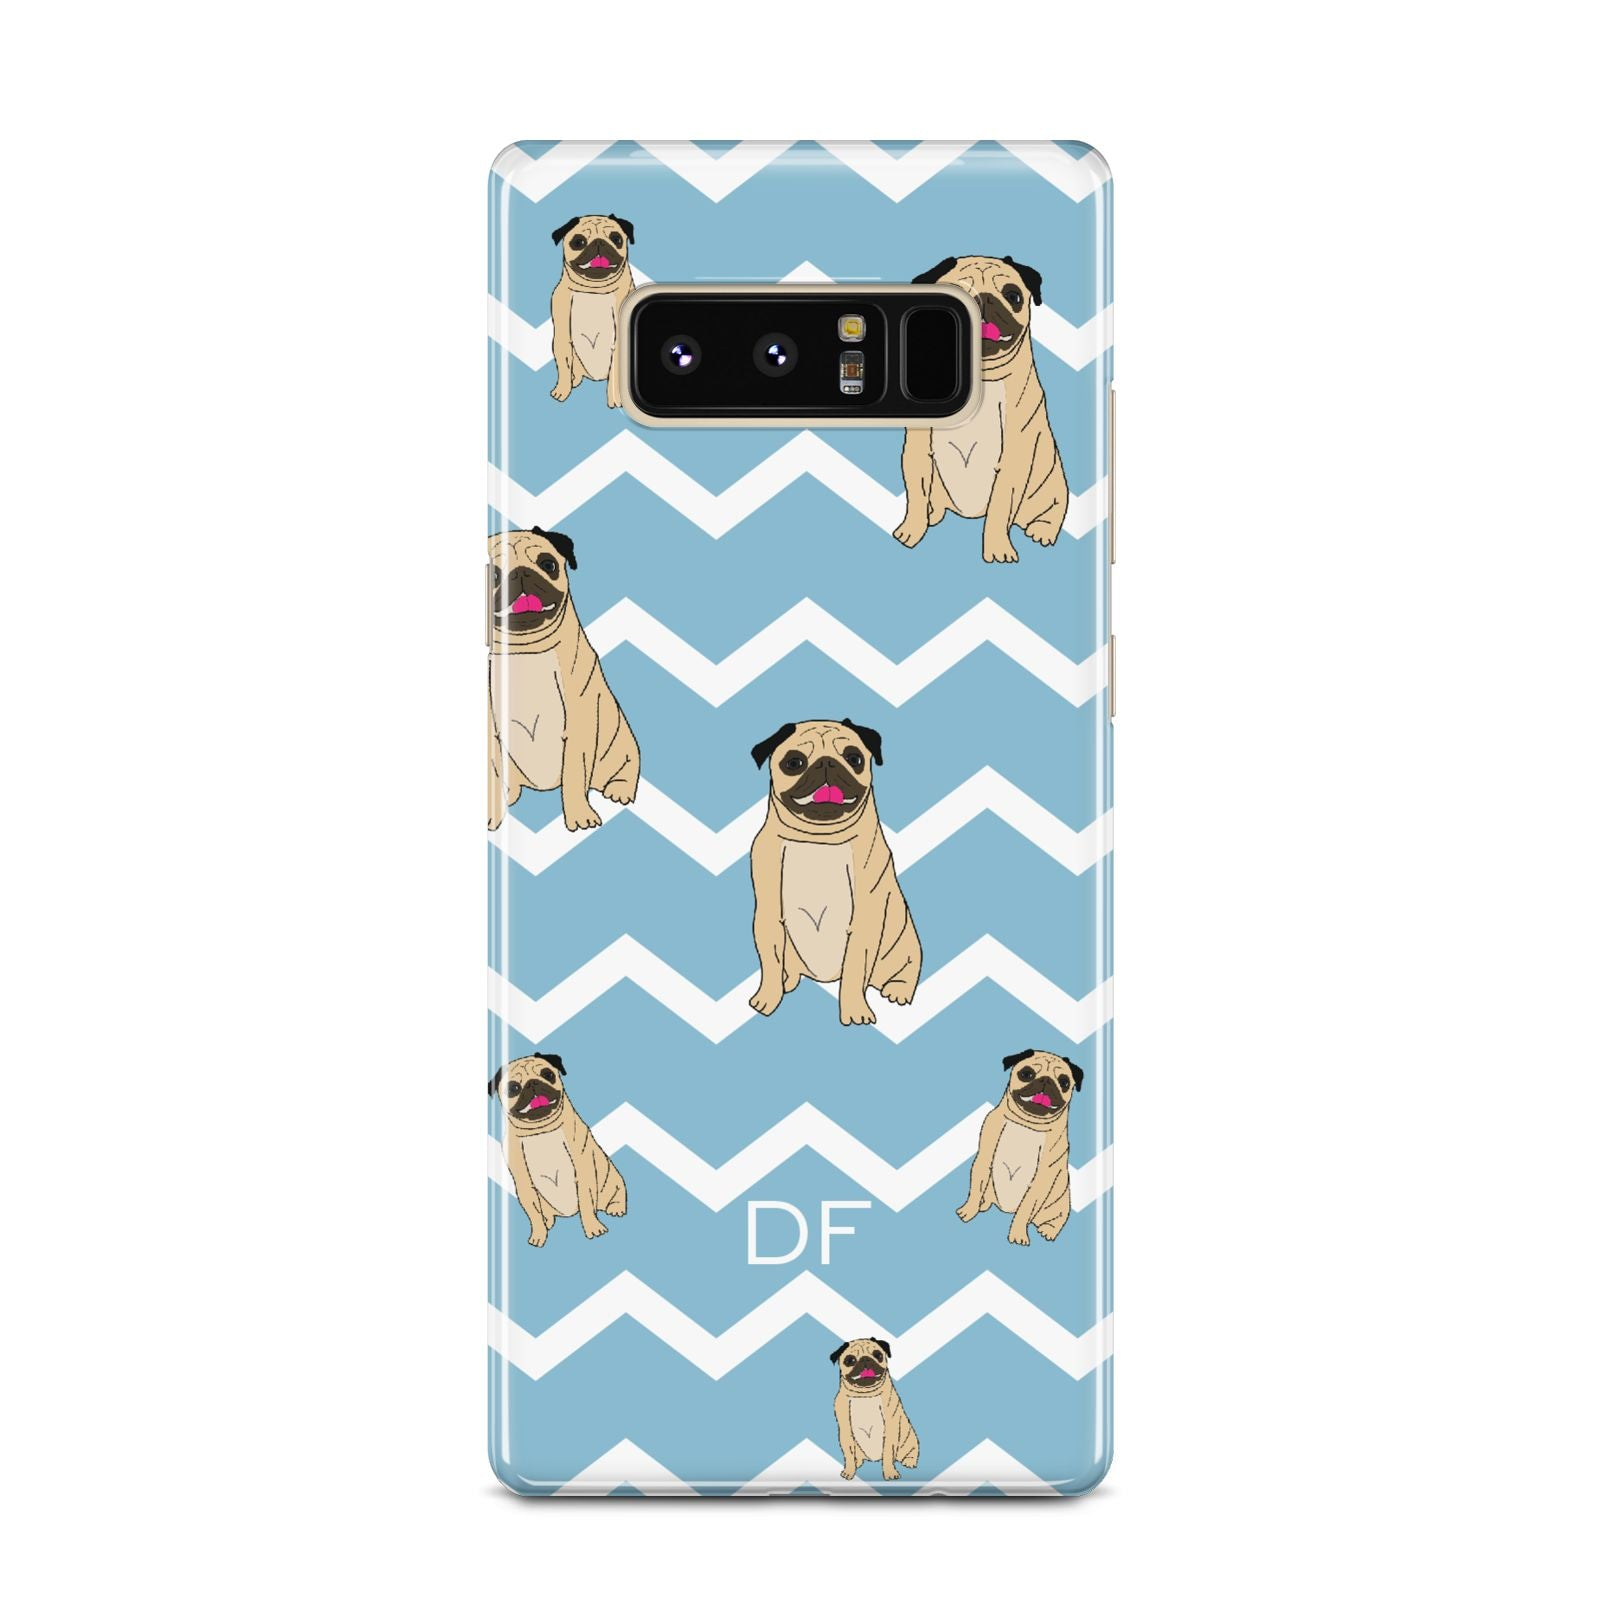 Personalised Pug Initials Samsung Galaxy Note 8 Case